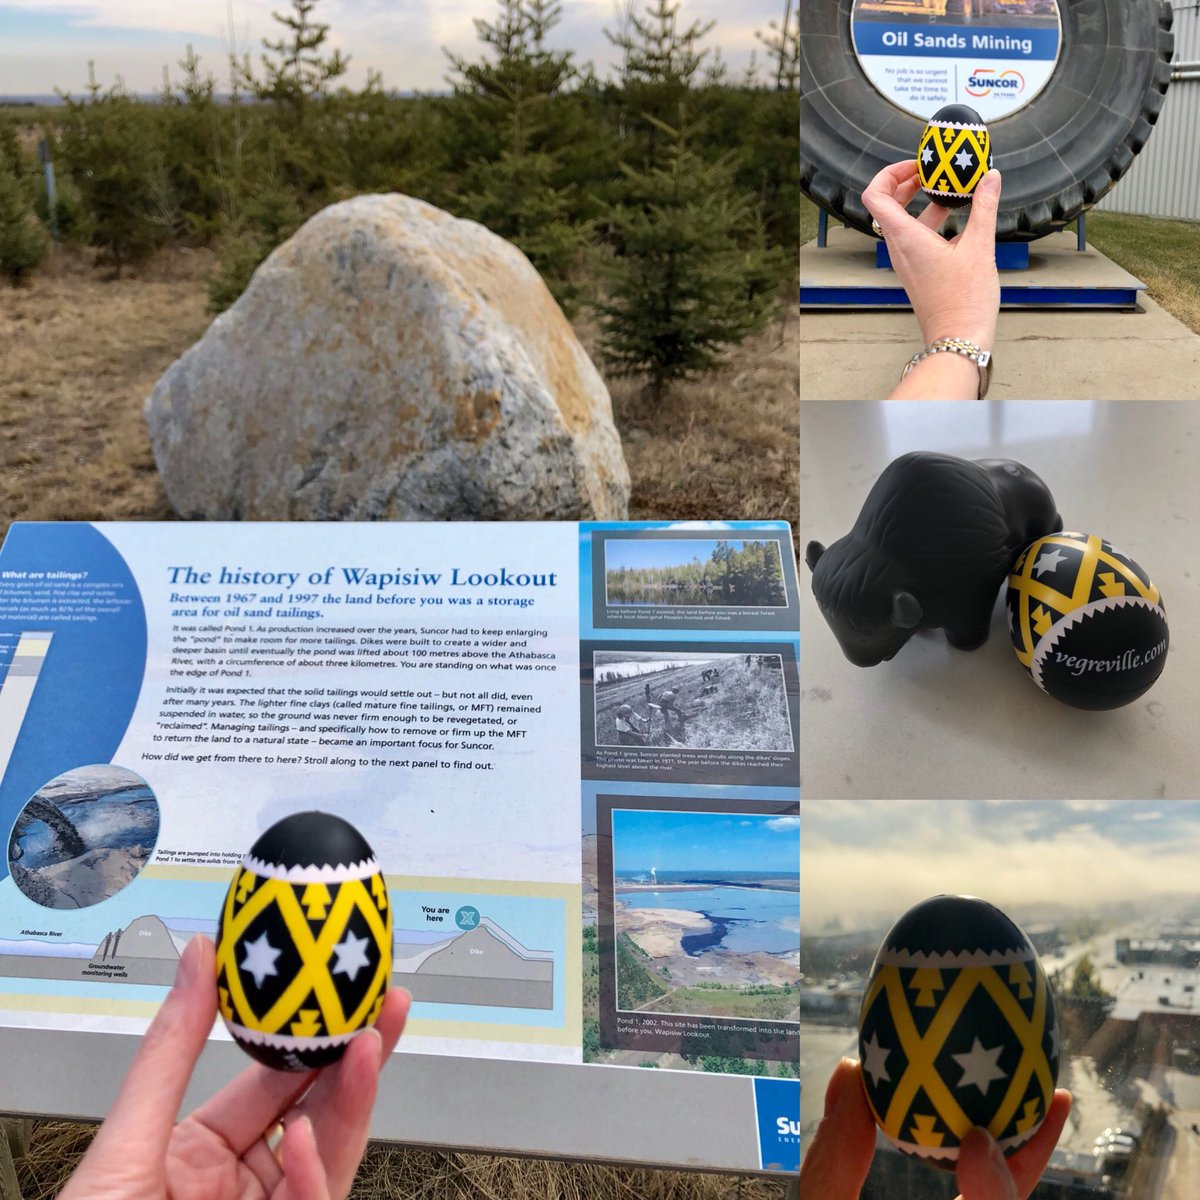 Wrapping up a great visit to @RMWoodBuffalo for #SenCA hearings on C-69 & @Suncor tour. This isn't @Paulatics pysanka, but I borrowed my cousin's to add to #PaulasPysankaTour pics! Thx again to #RMWB and Suncor ☺️